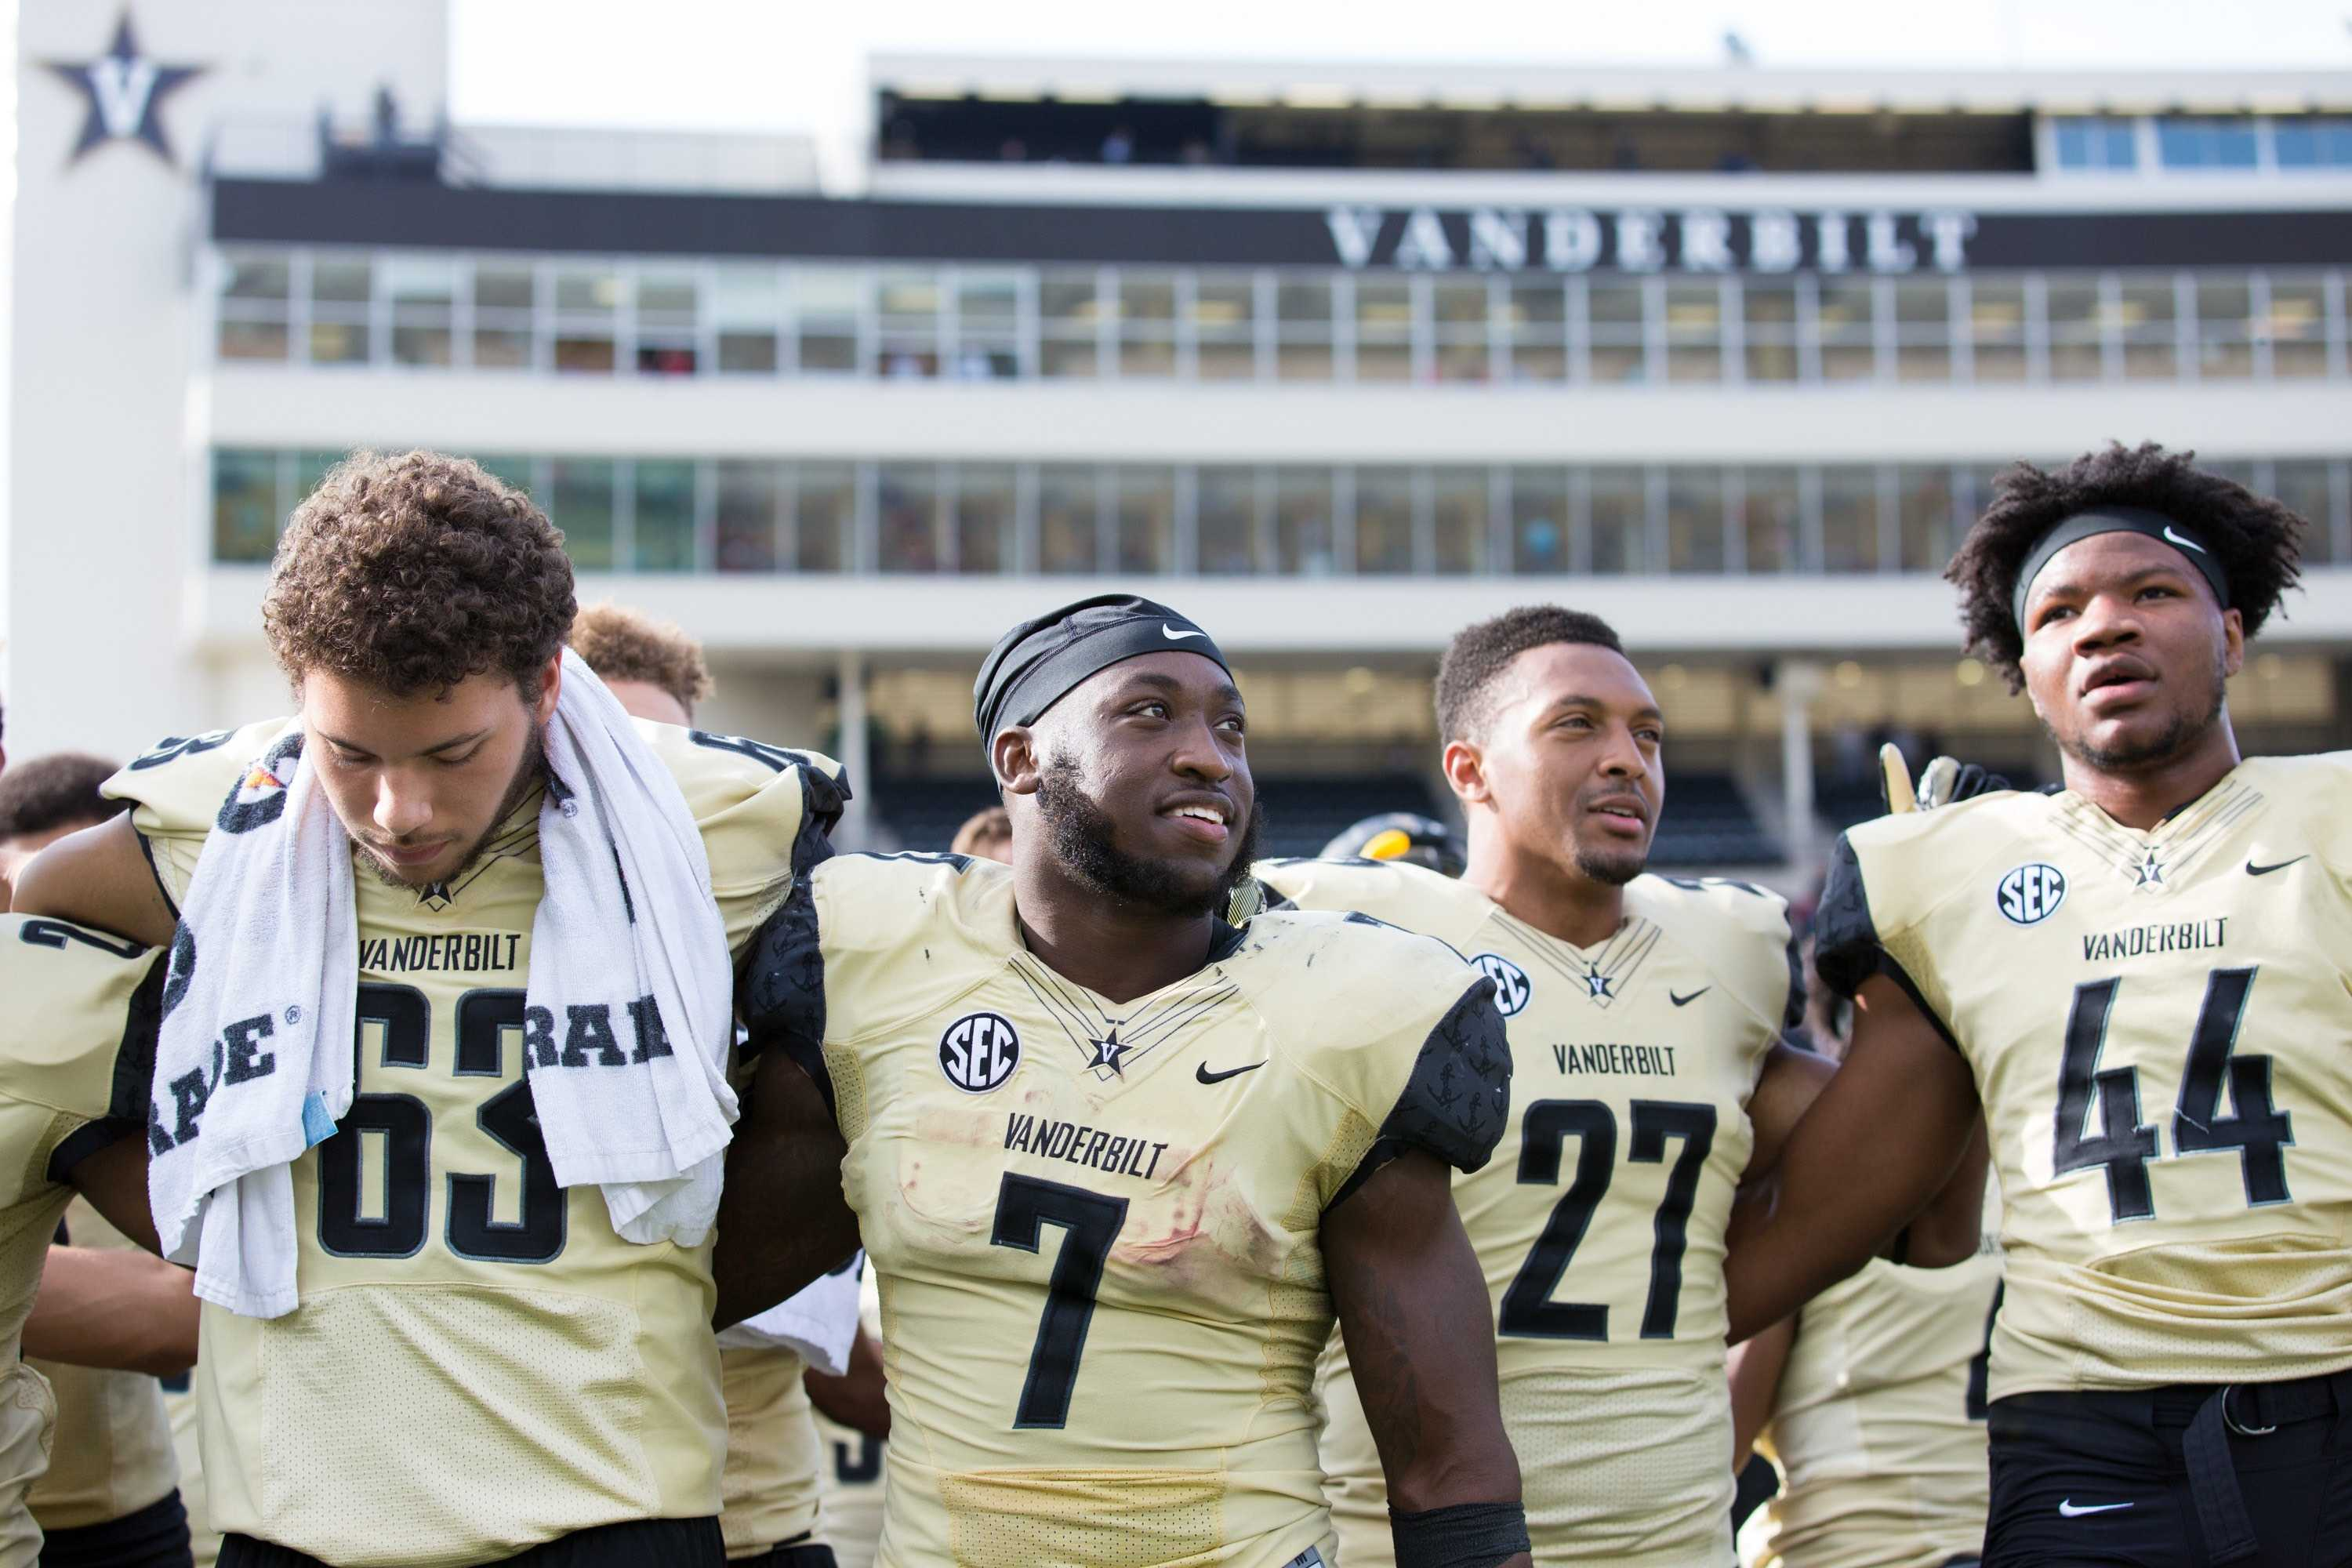 The Commodores play the WKU Hilltoppers on Saturday, November 4, 2017. Vanderbilt won 31-17.  Photo by Claire Barnett//The Vanderbilt Hustler.